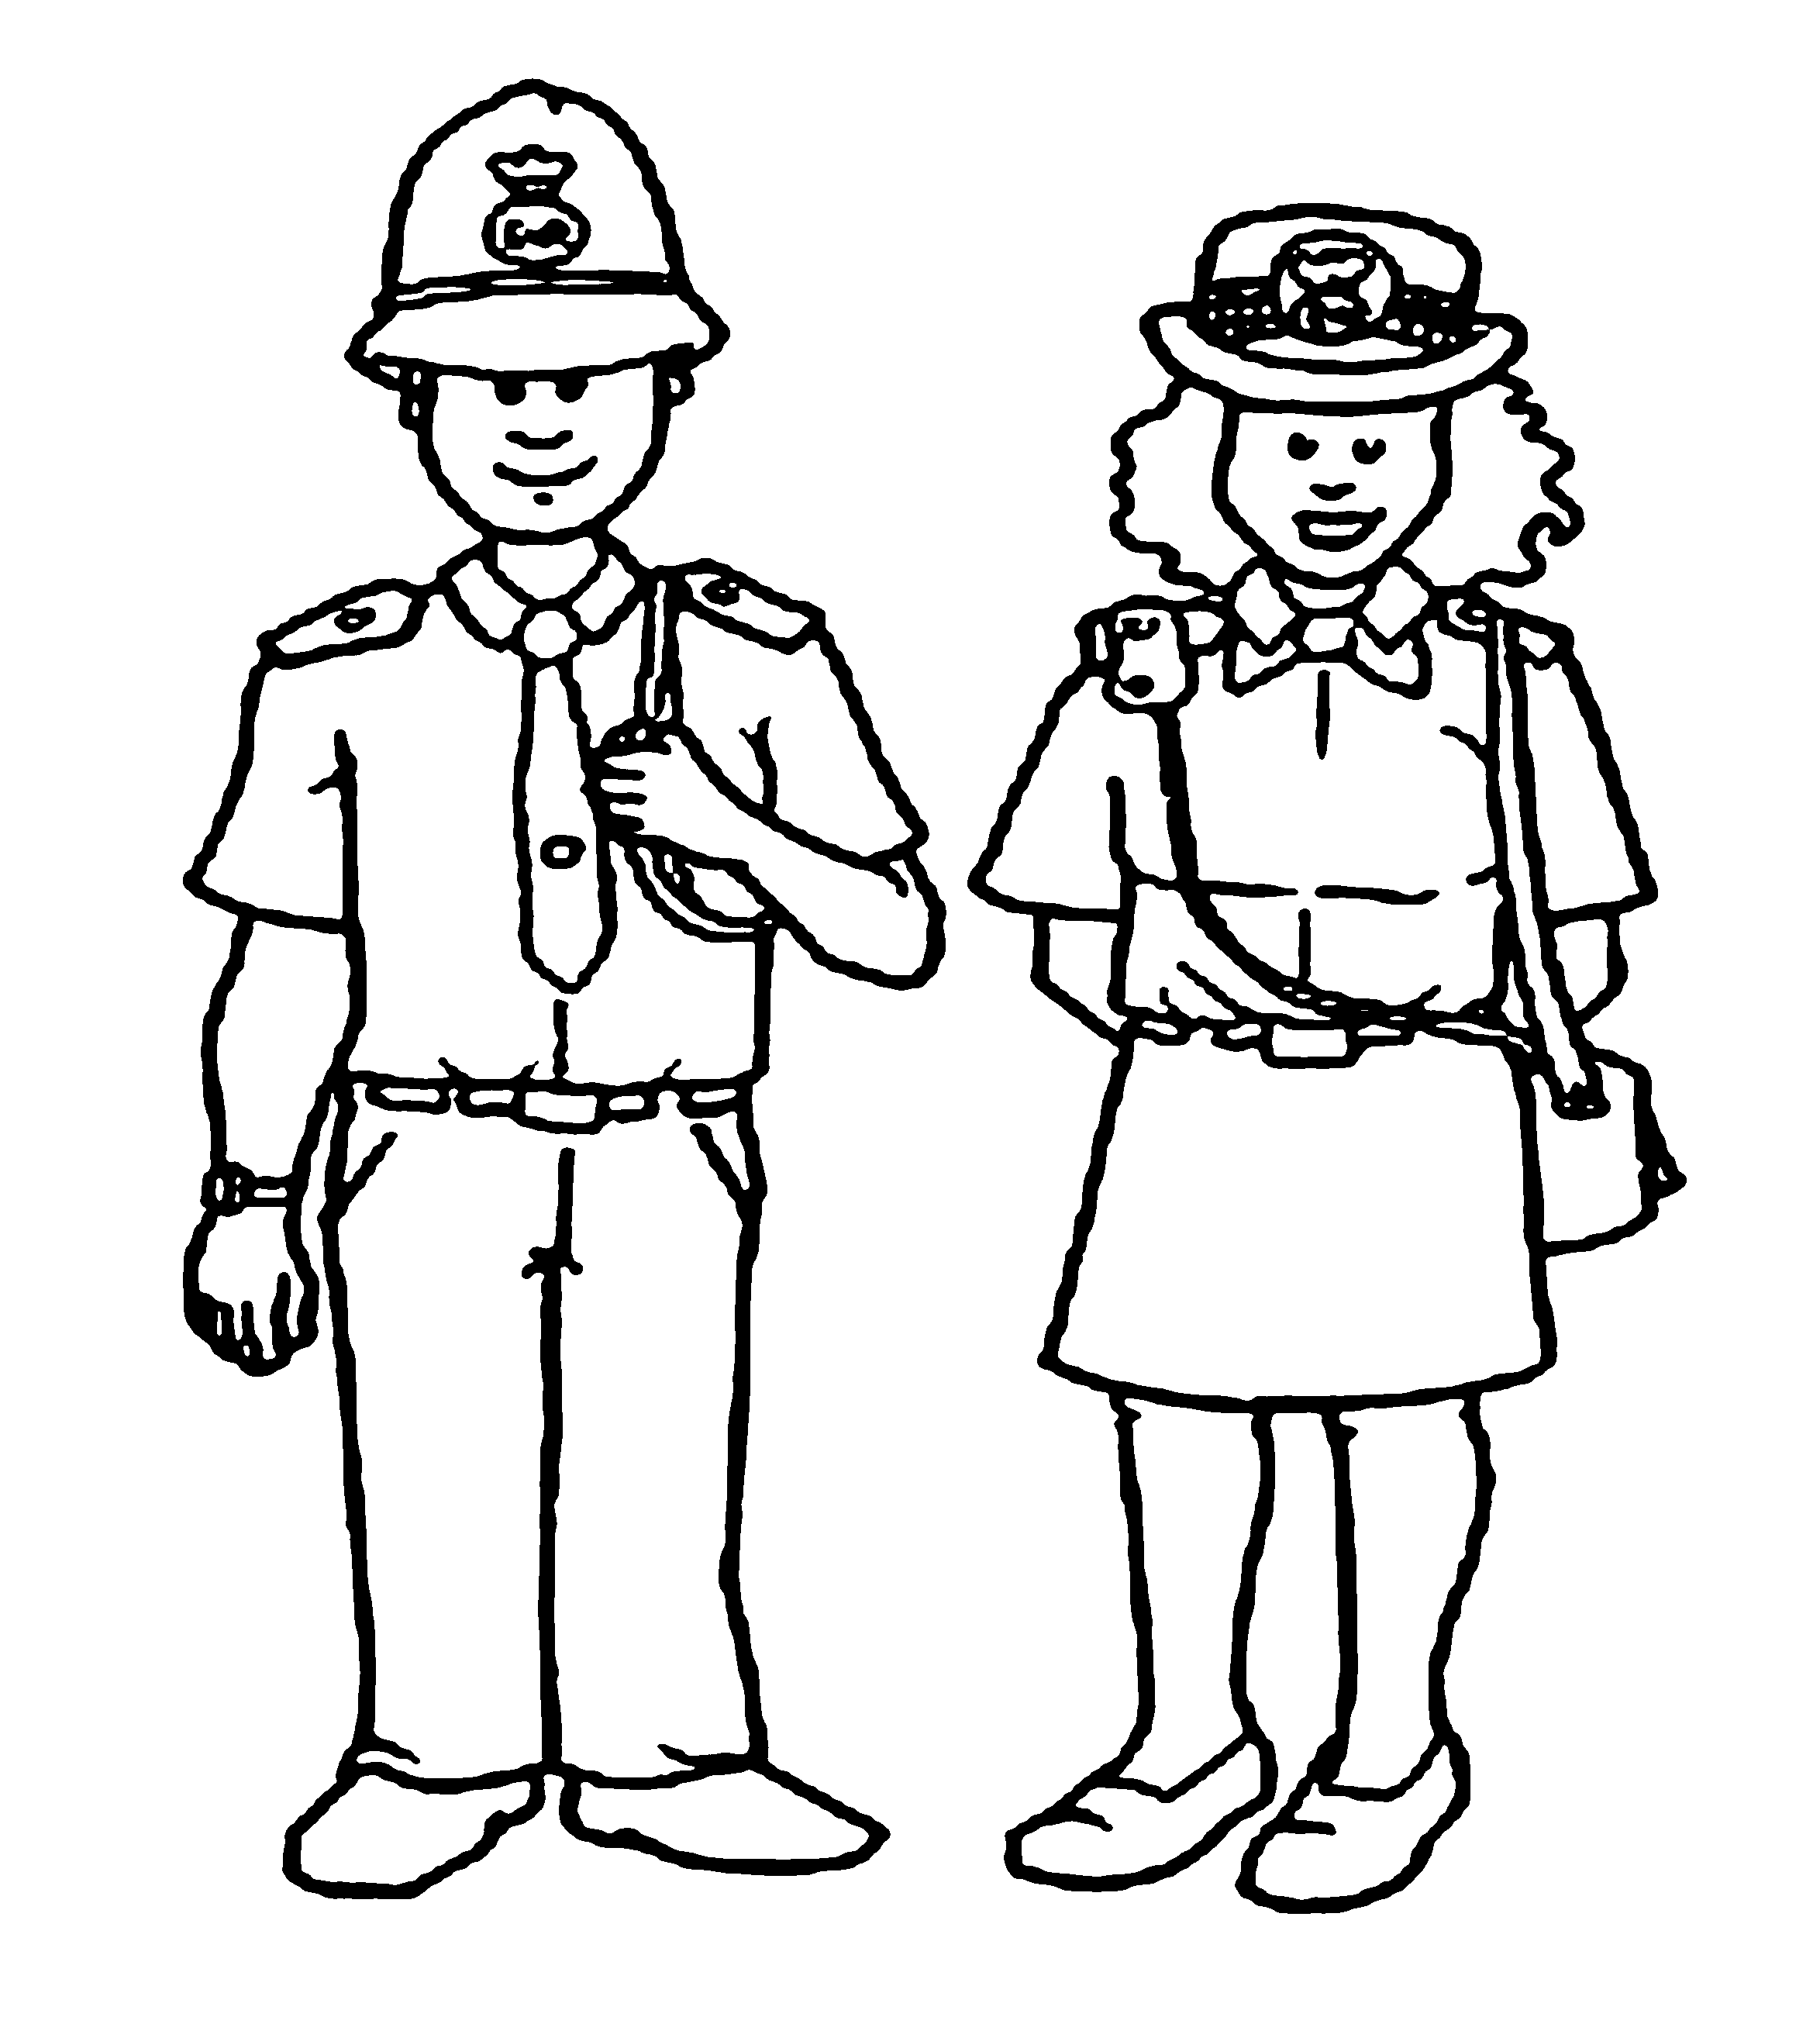 Police Officer Drawing For Kids